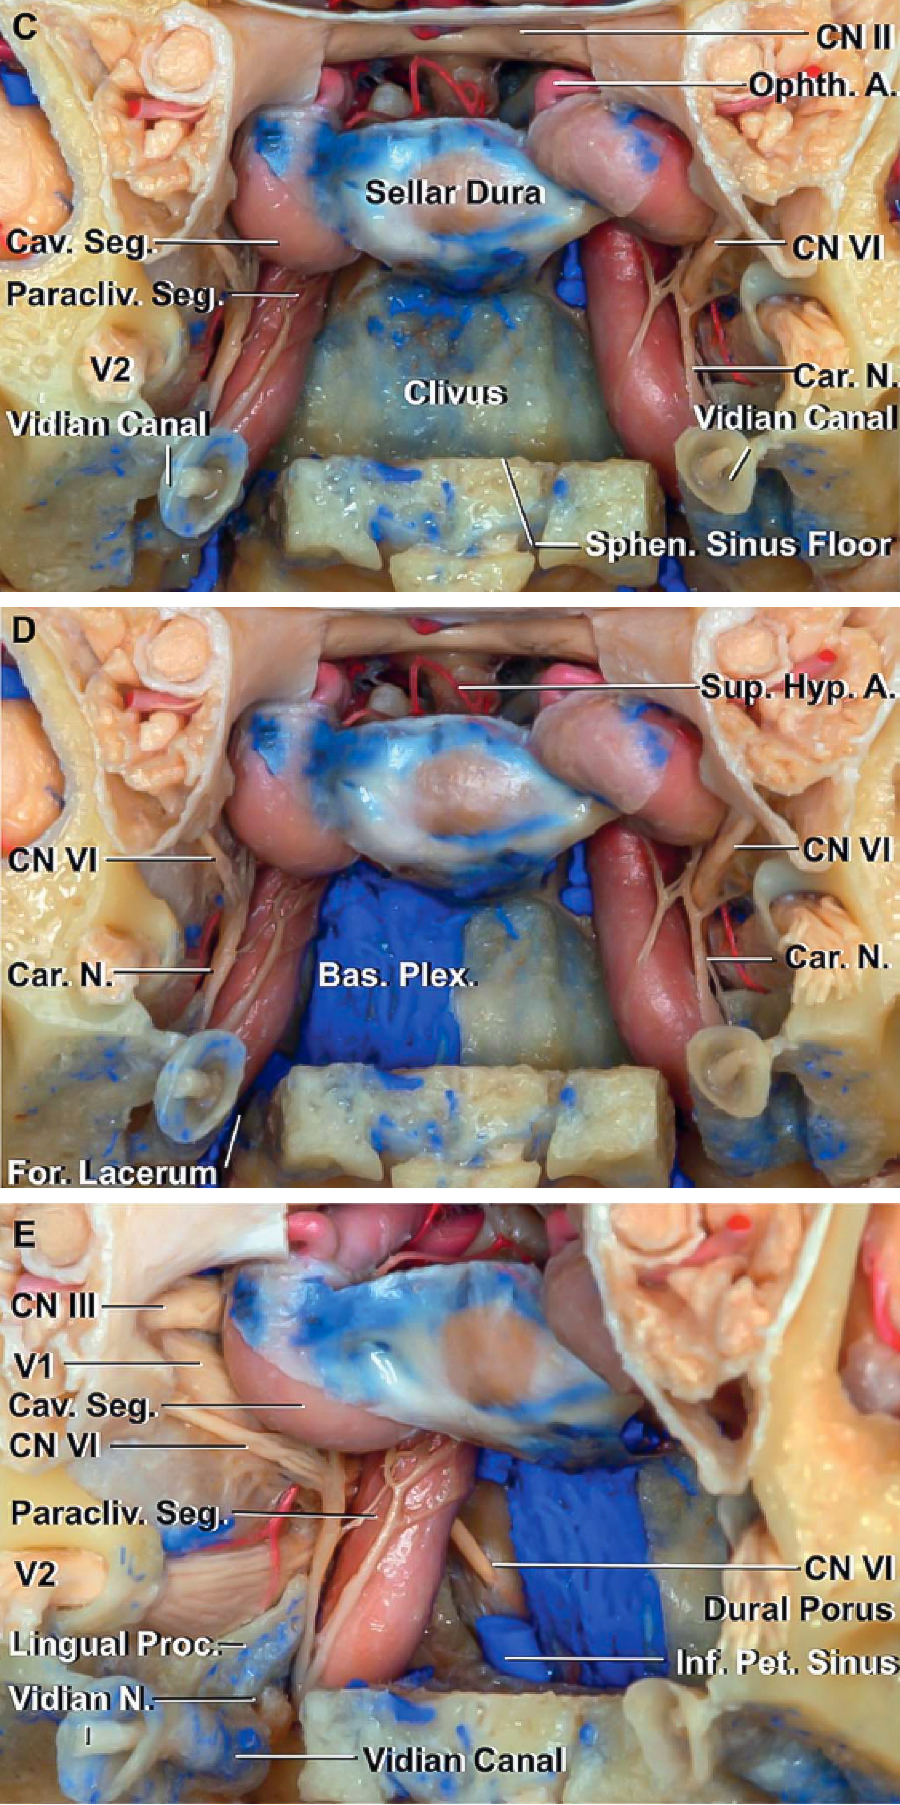 Figure 4: The medial wall of the cavernous sinus with its relationship to the cavernous carotid and the pituitary gland are shown (upper photos). Please note the location of the abducens nerve within the cavernous sinus and the position of the vidian nerve in relation to the carotid artery (middle and bottom photos). (Images courtesy of AL Rhoton, Jr.)